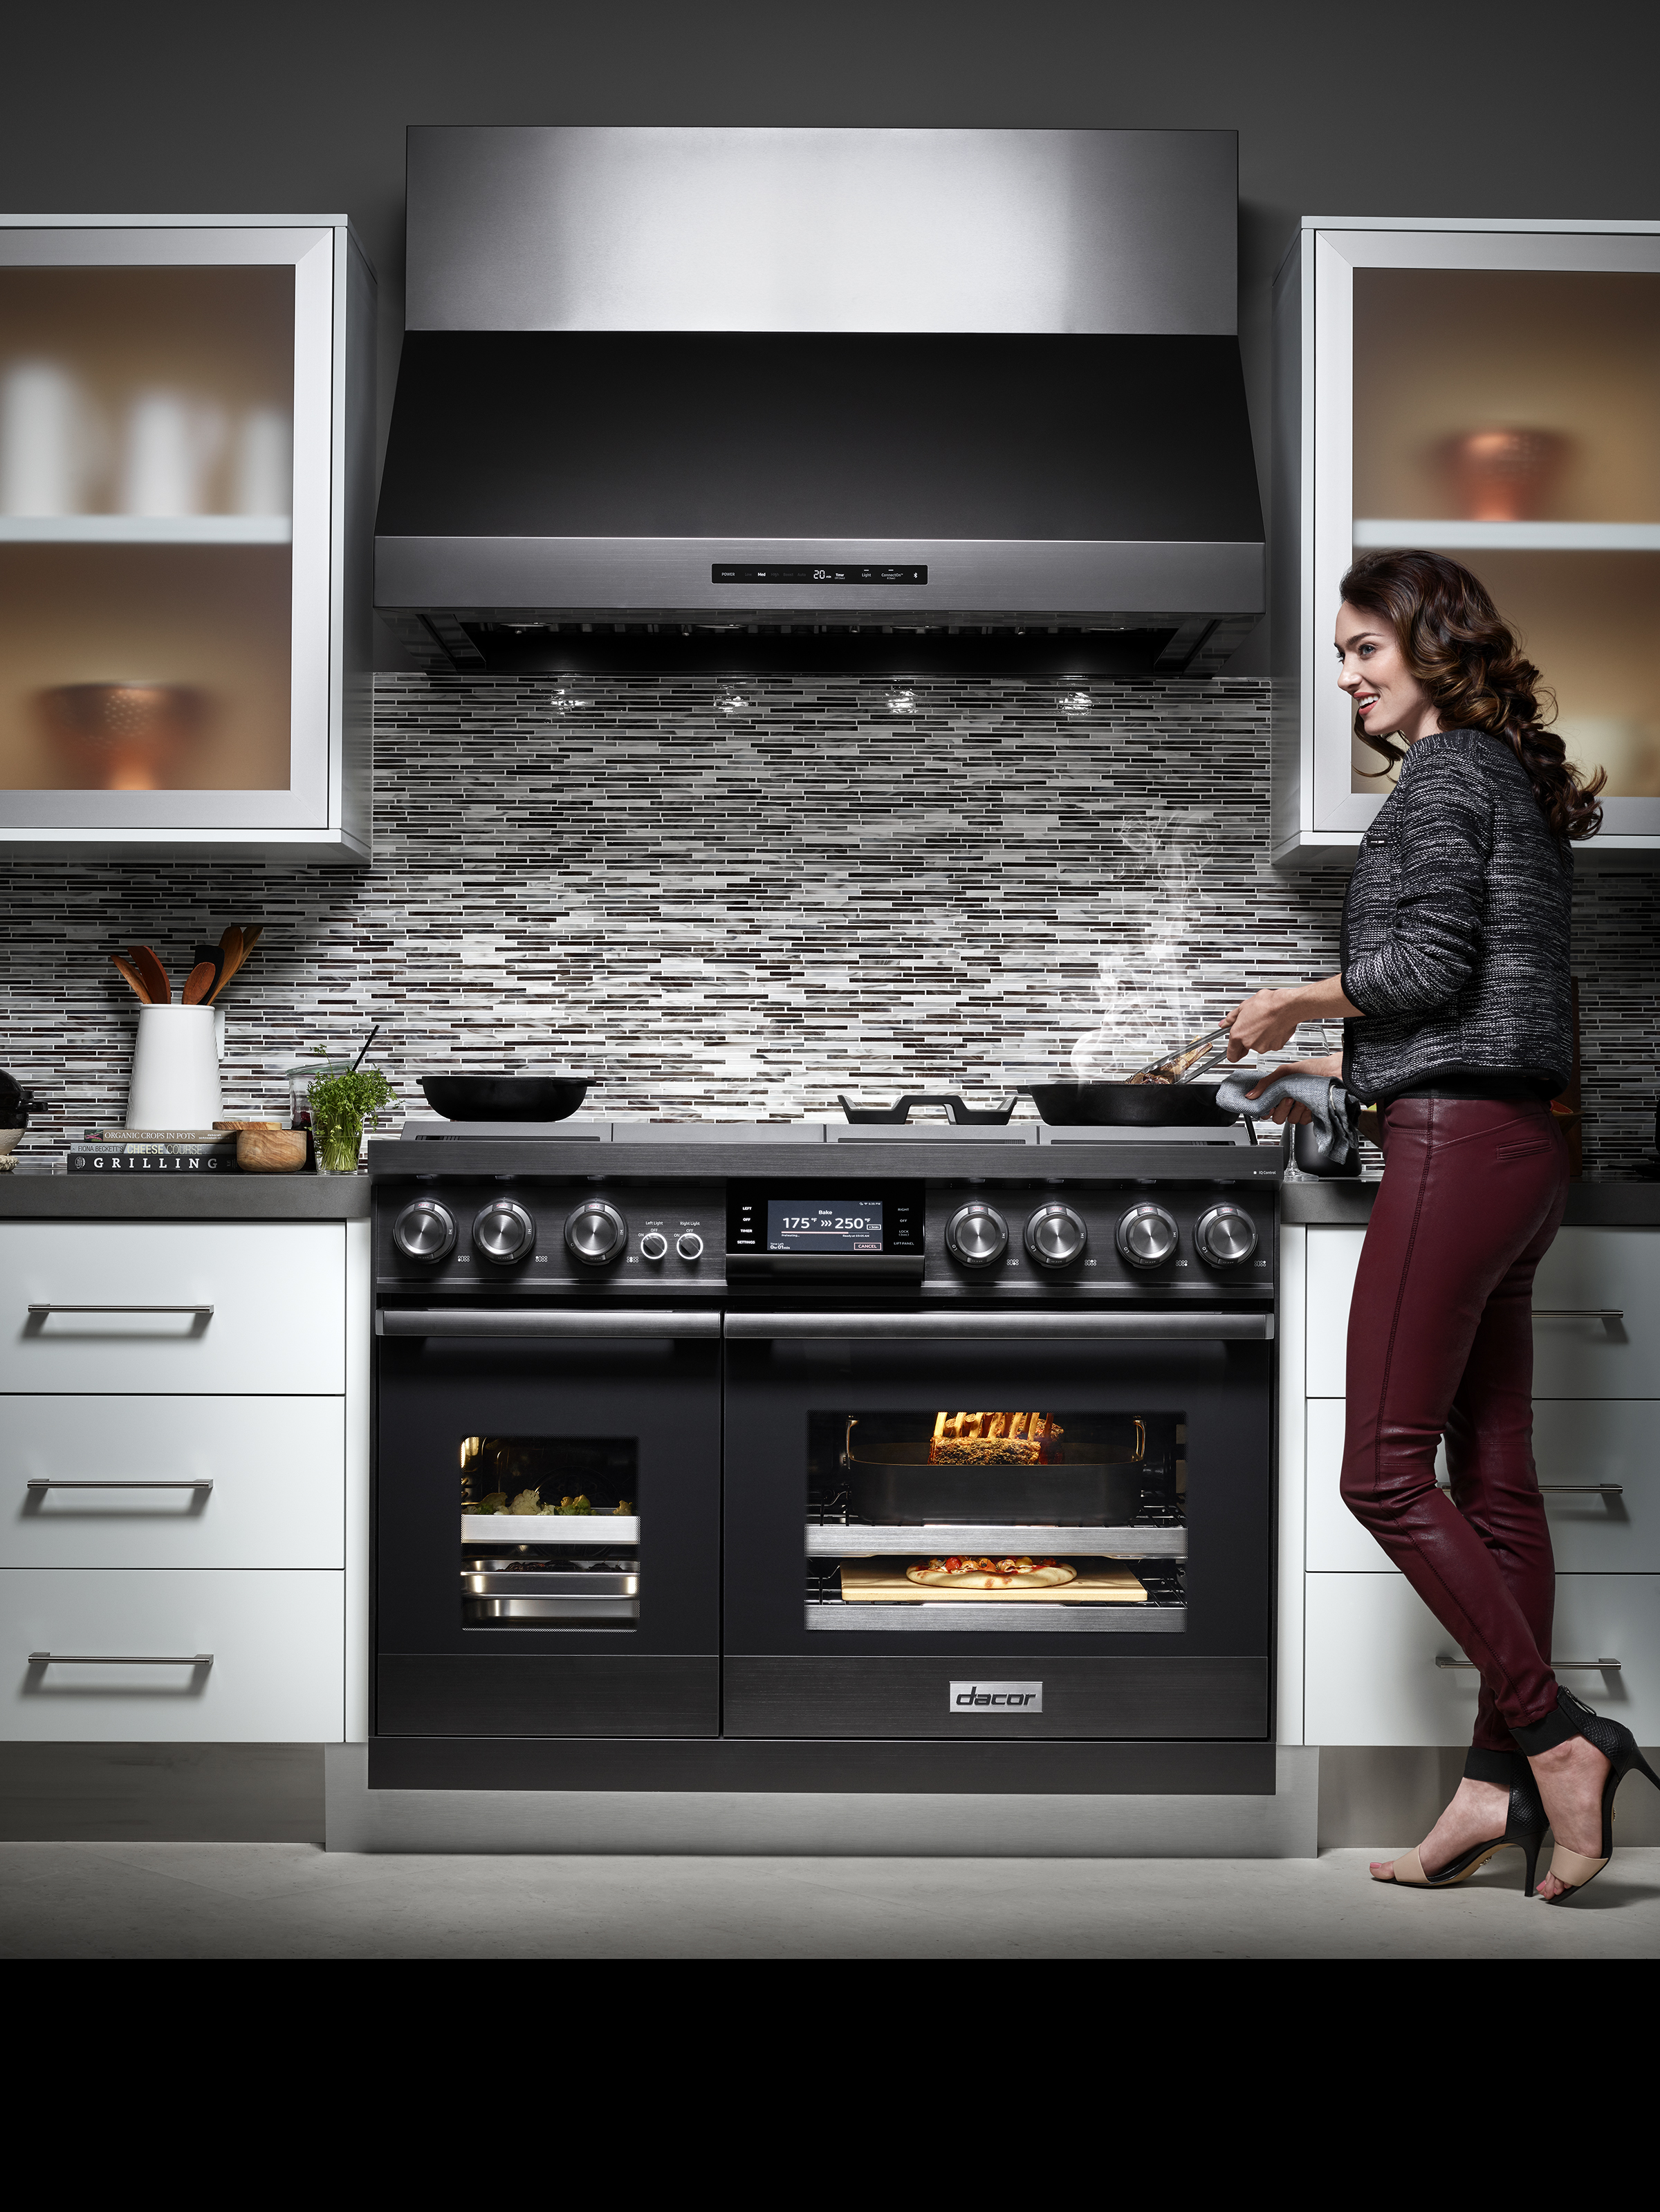 Dacor Introduces The Modernist Collection Of Luxury Appliances Samsung Us Newsroom